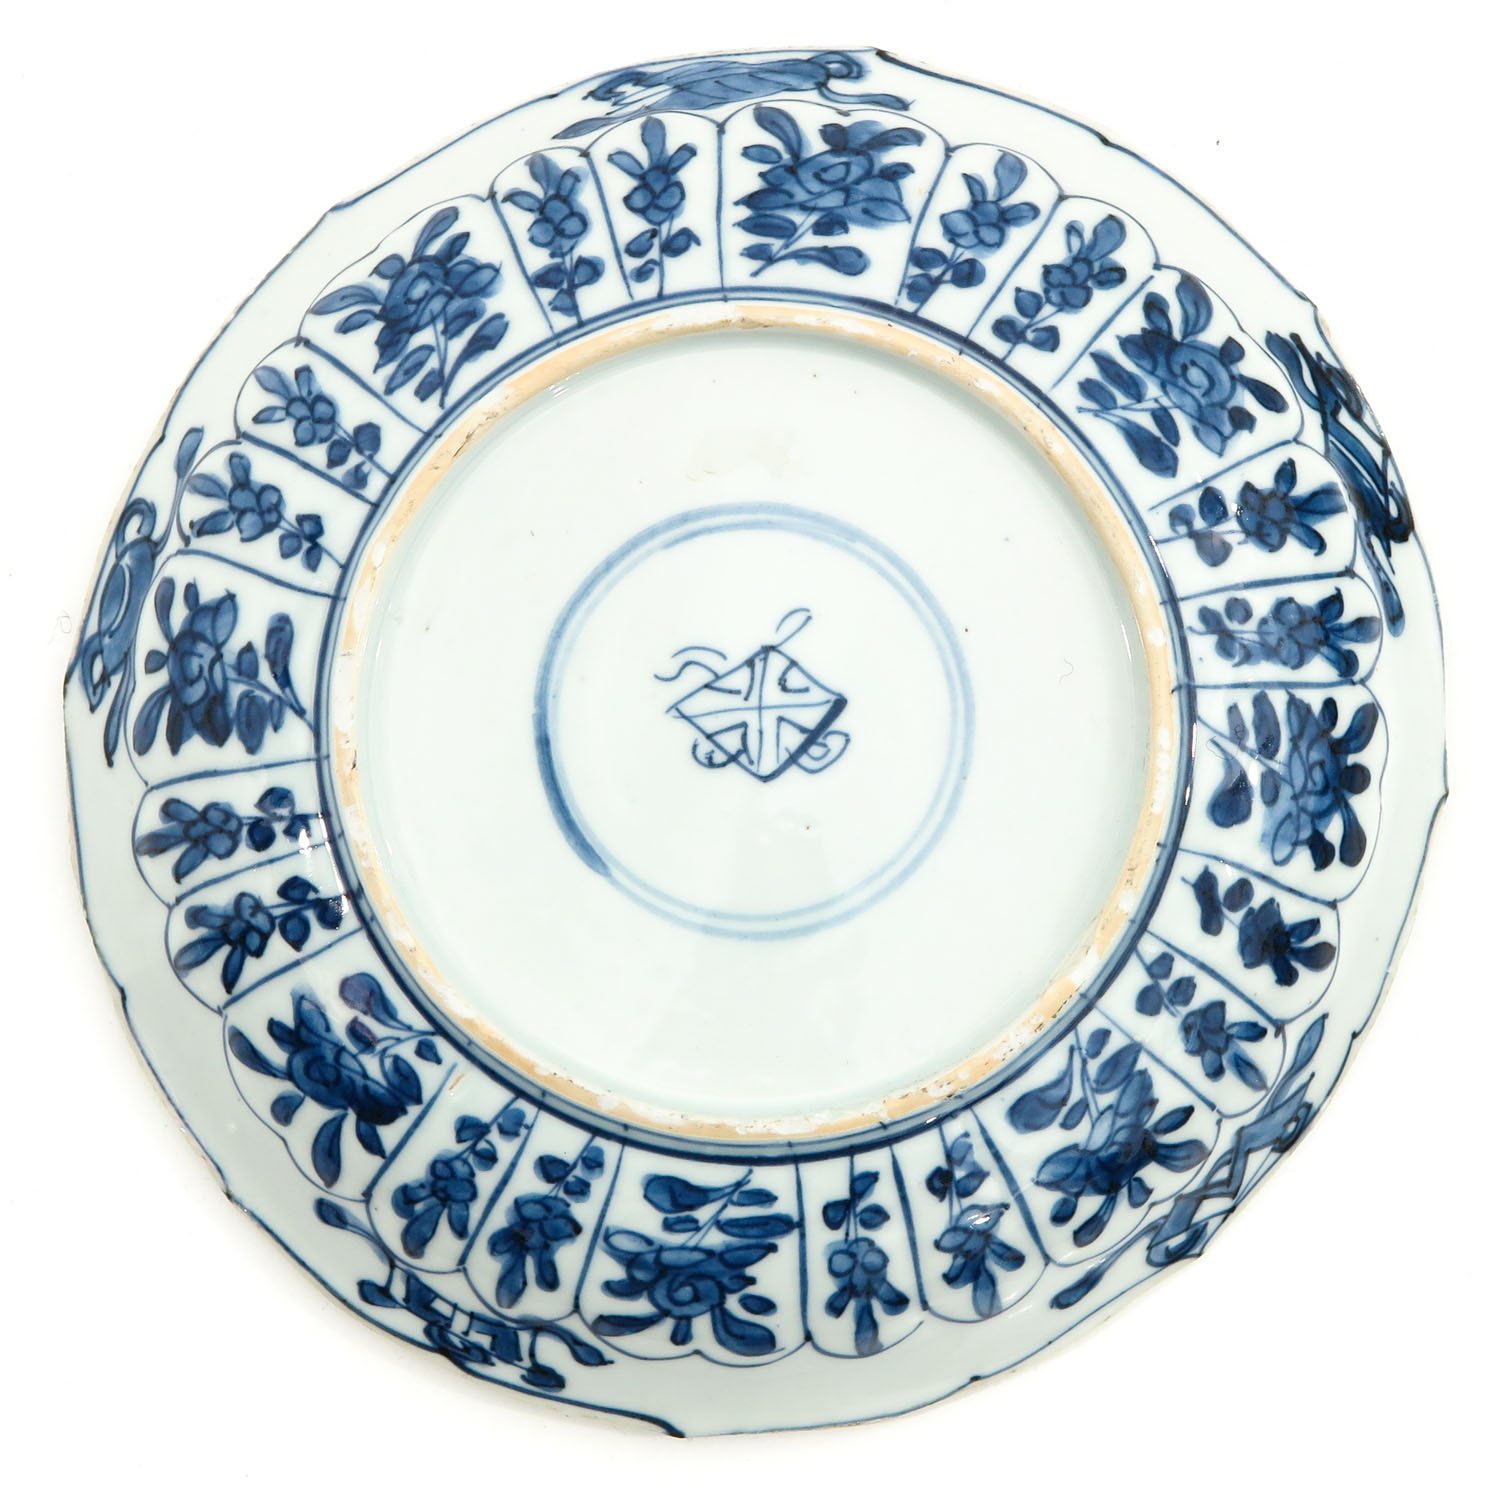 2 Blue and White Plates - Image 4 of 10